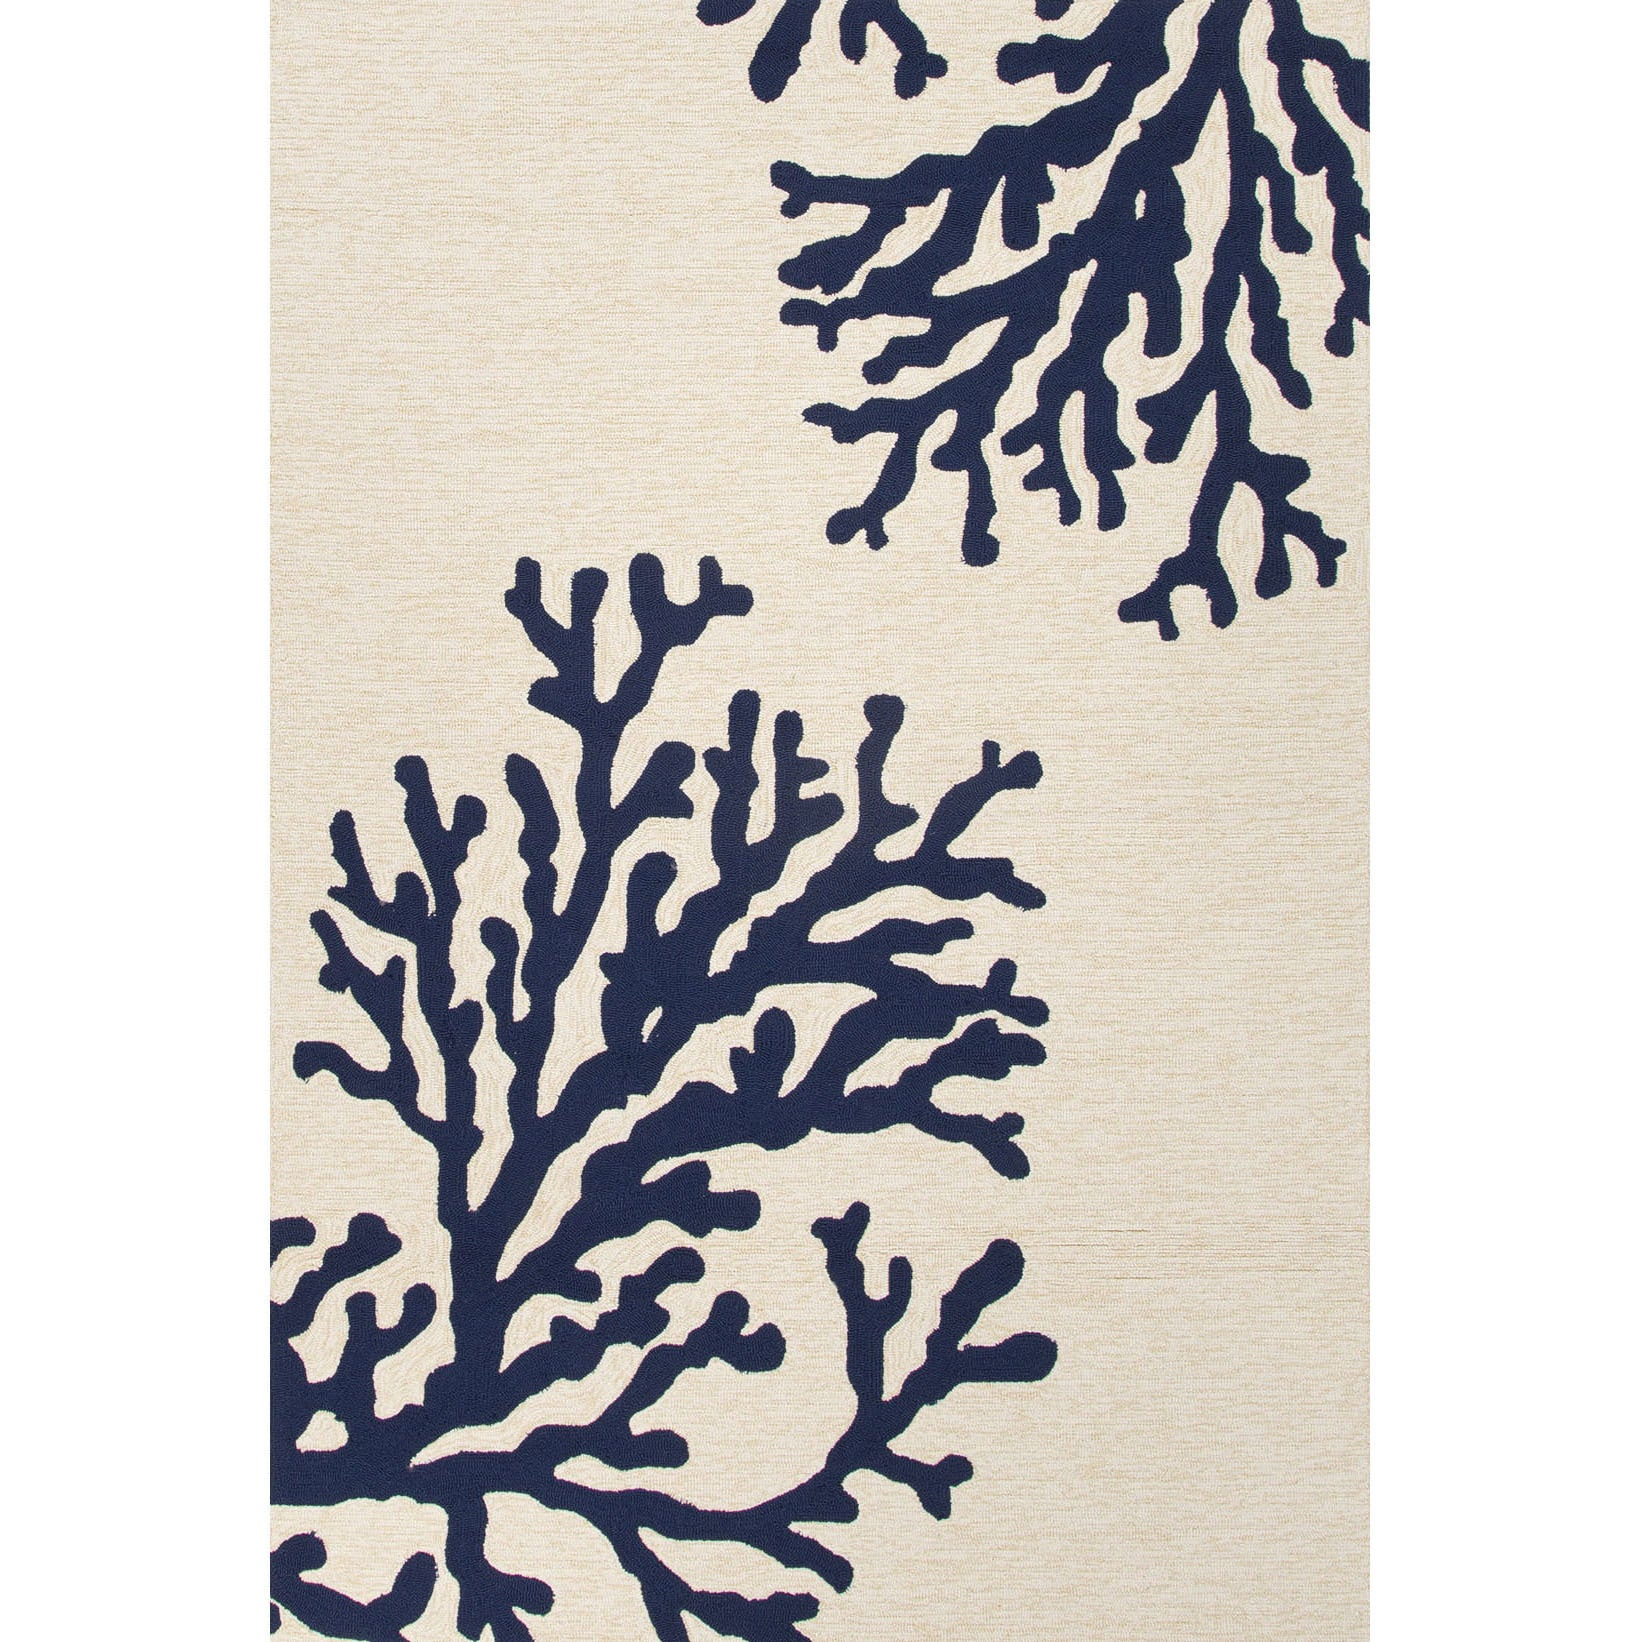 Overstock.com Handmade Abstract Pattern White/ Blue Polypropylene Area Rug (5' x 7'6) at Sears.com